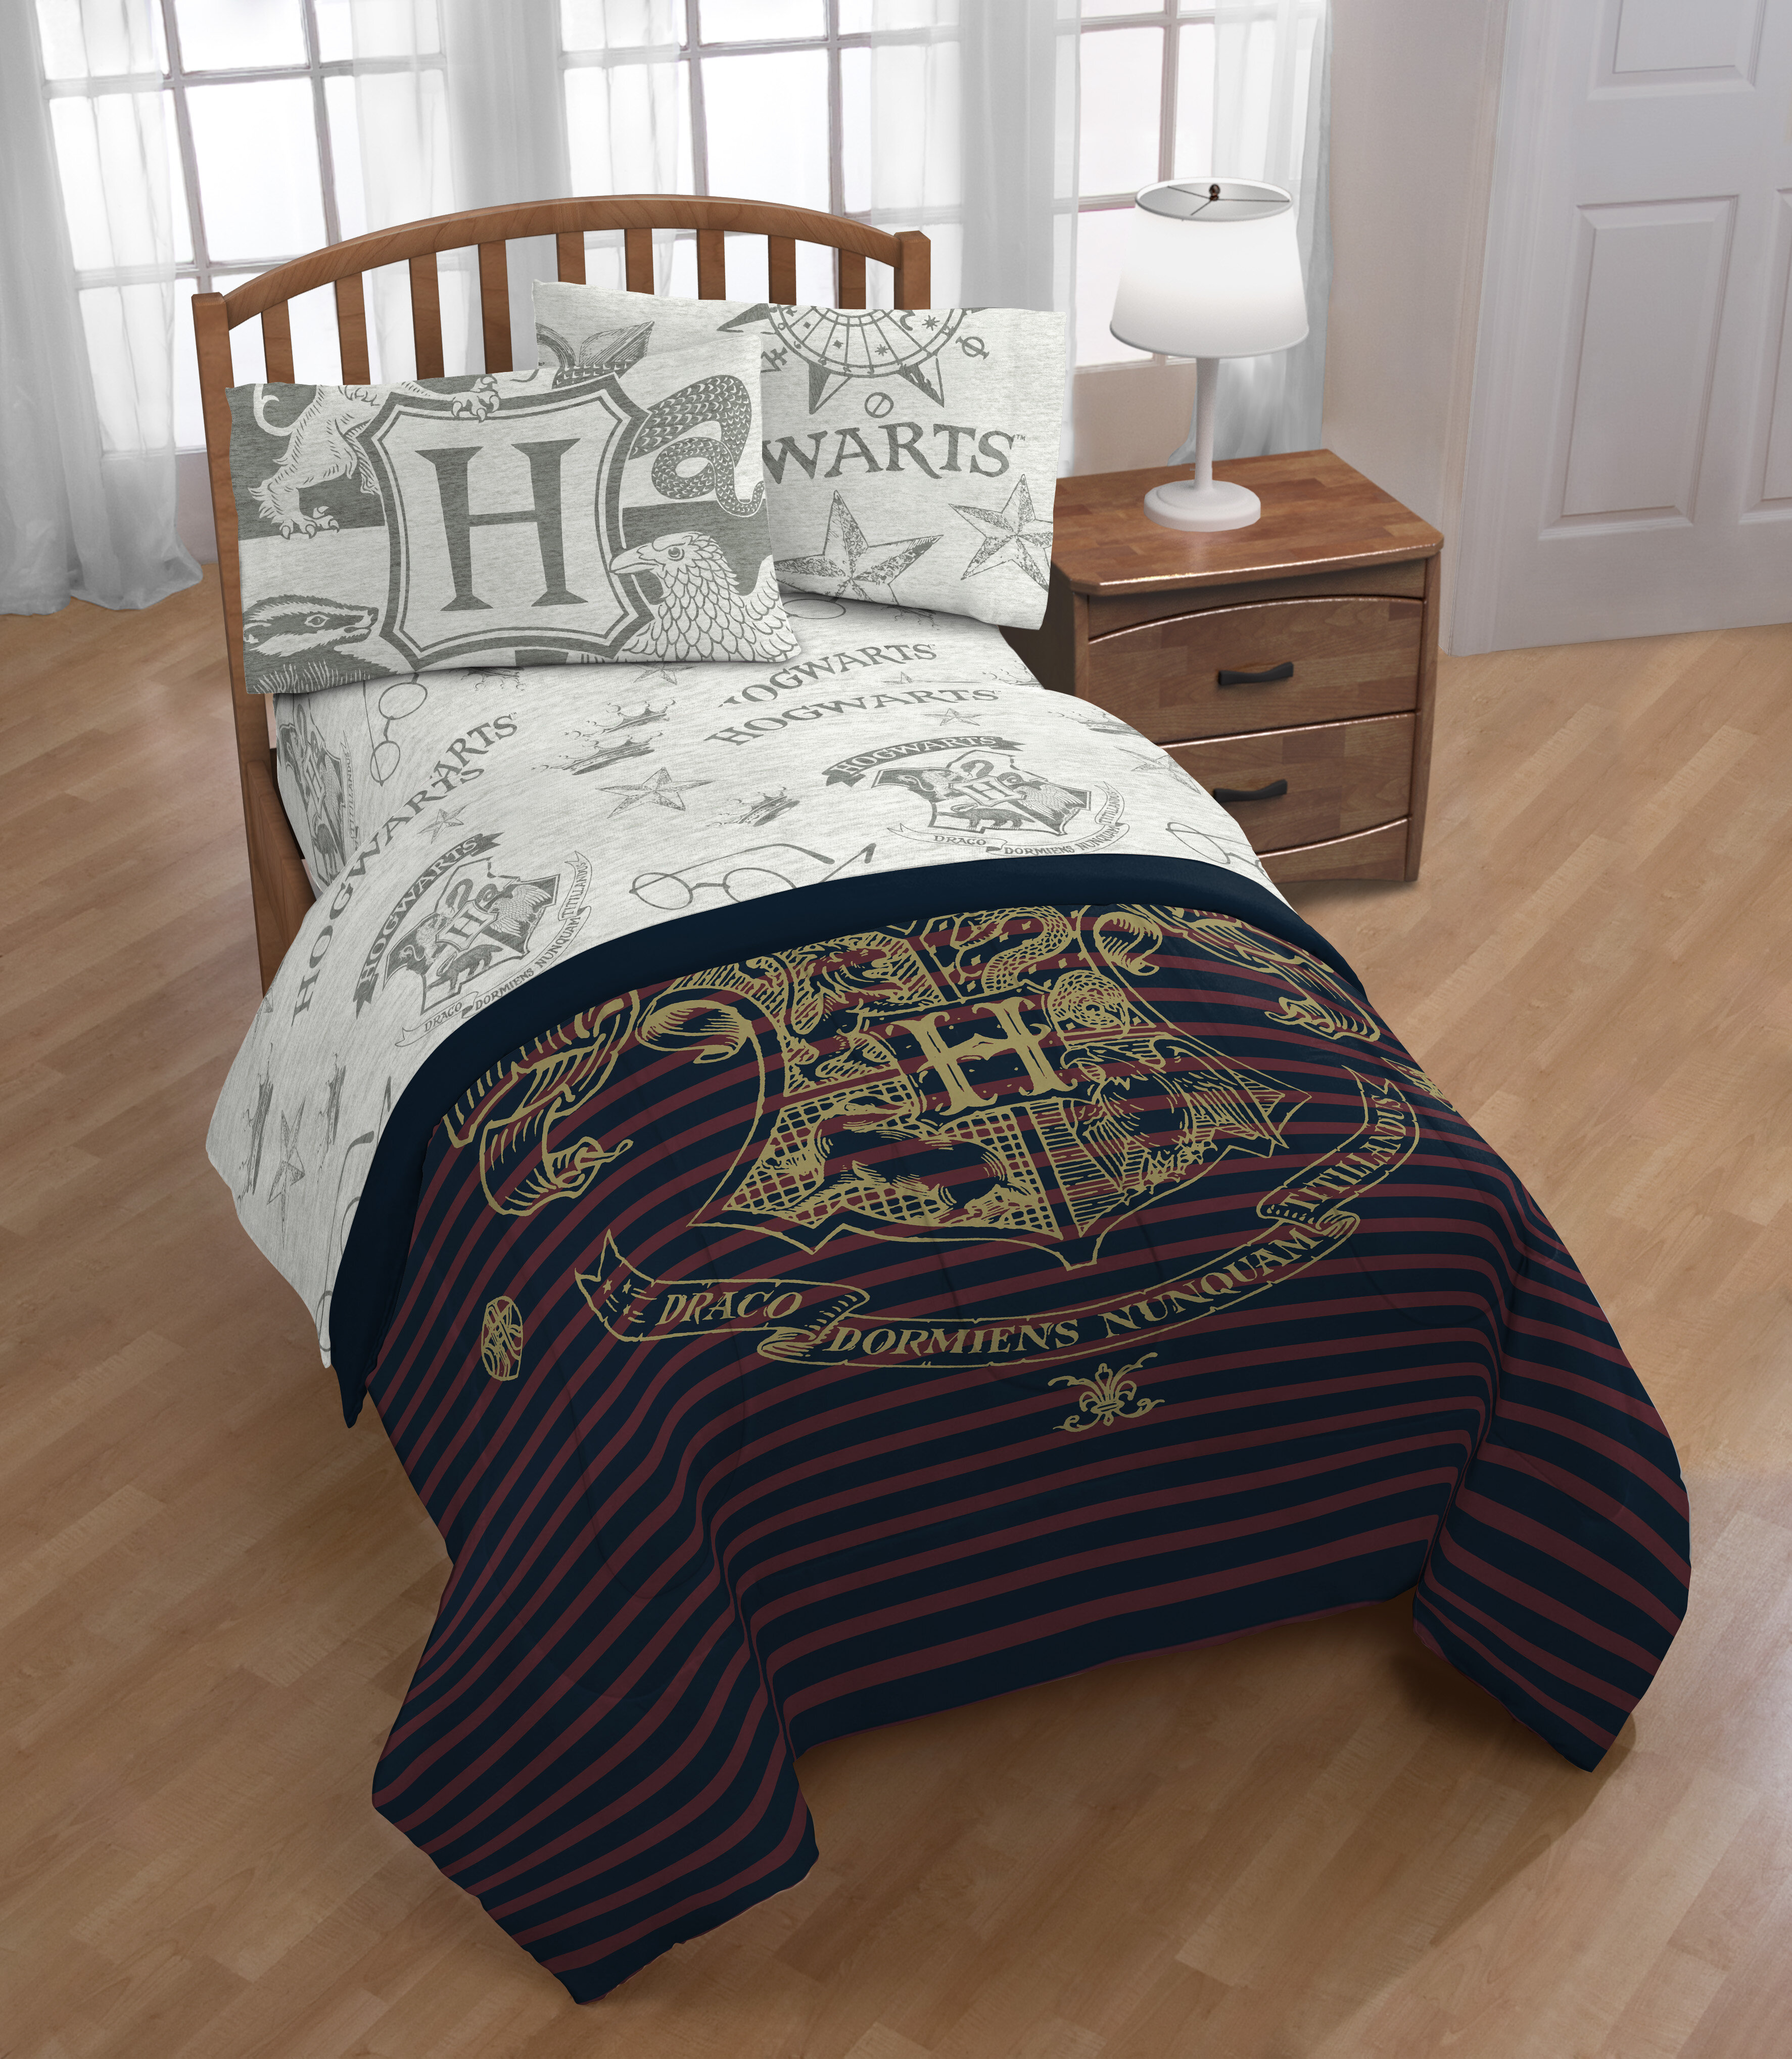 Harry Potter 3-Pieces Bedding Set Includes Quilt Cover And Pillowcases